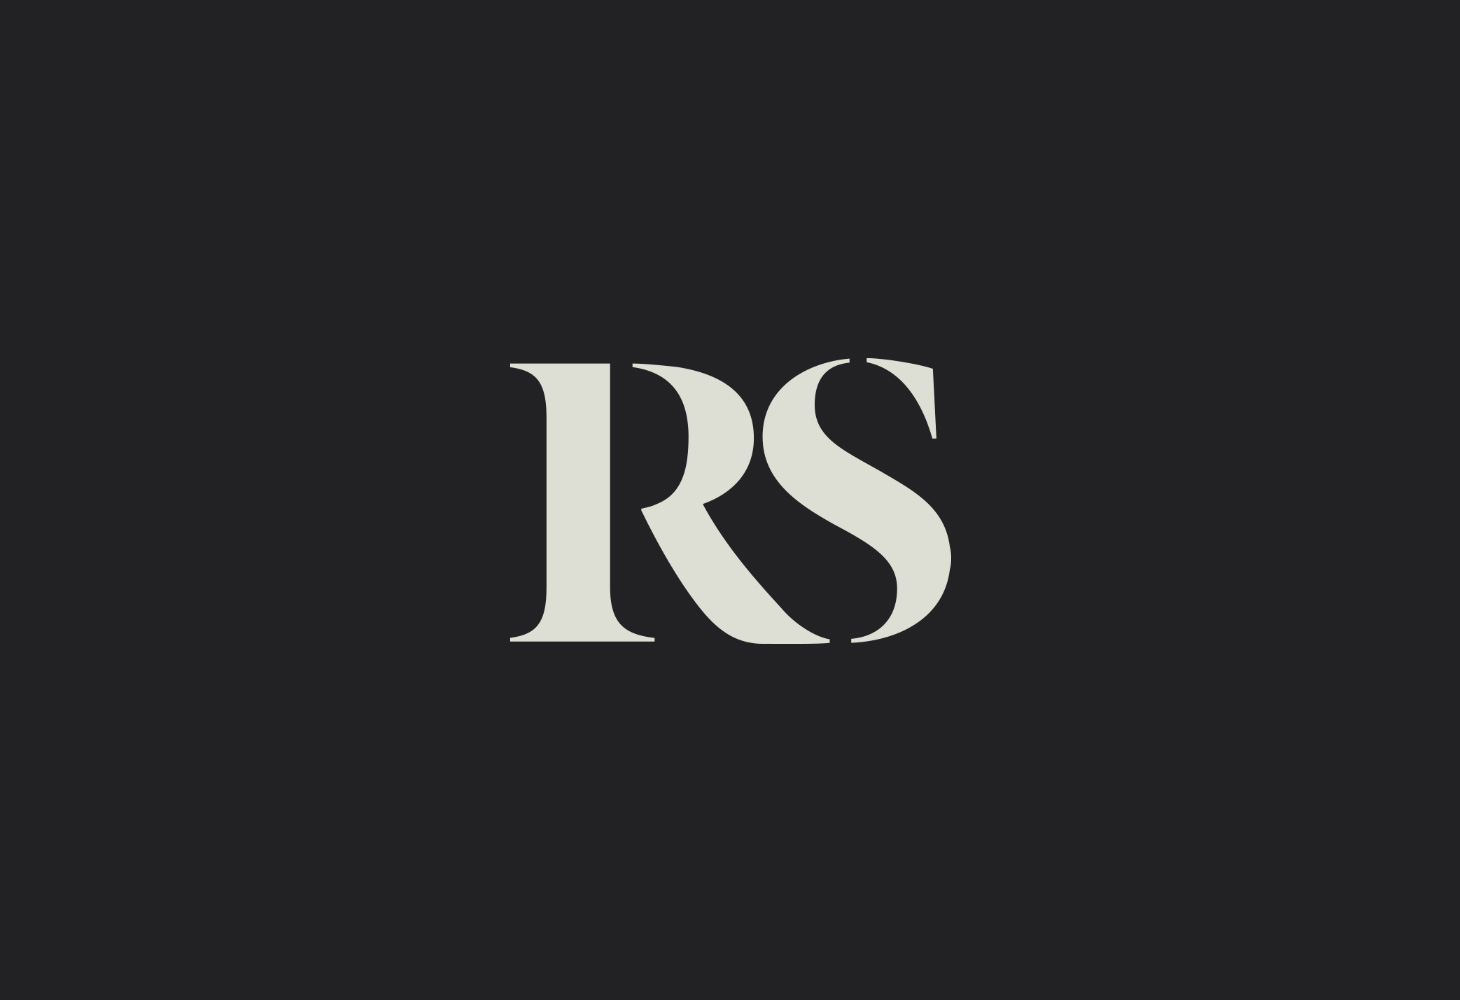 RS - Logotype - RS